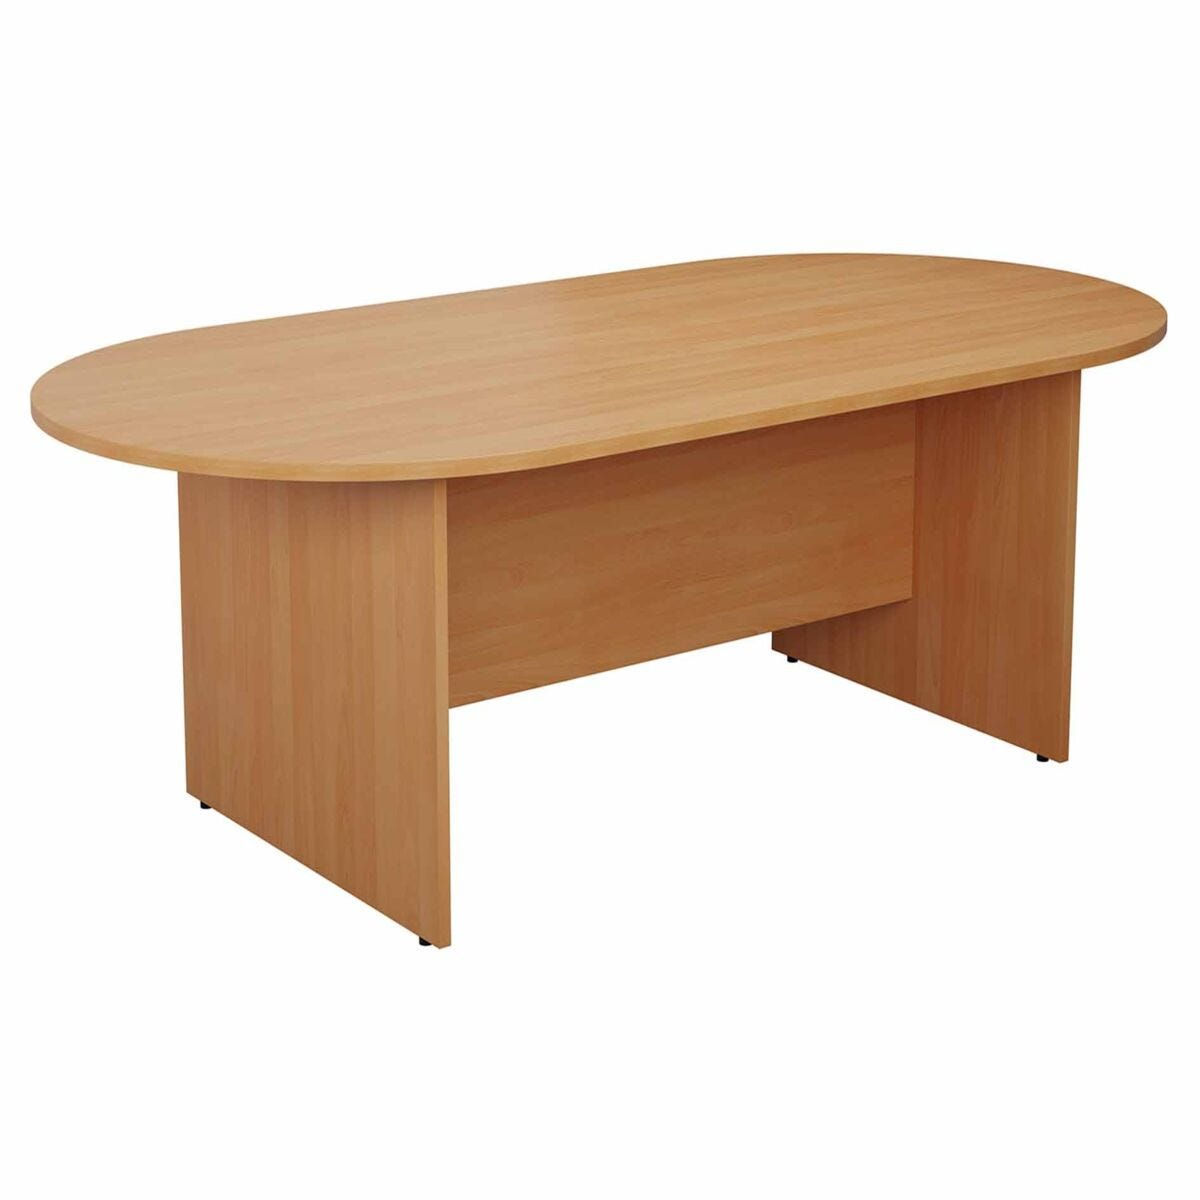 TC Office Long D-End Boardroom Table 2400mm